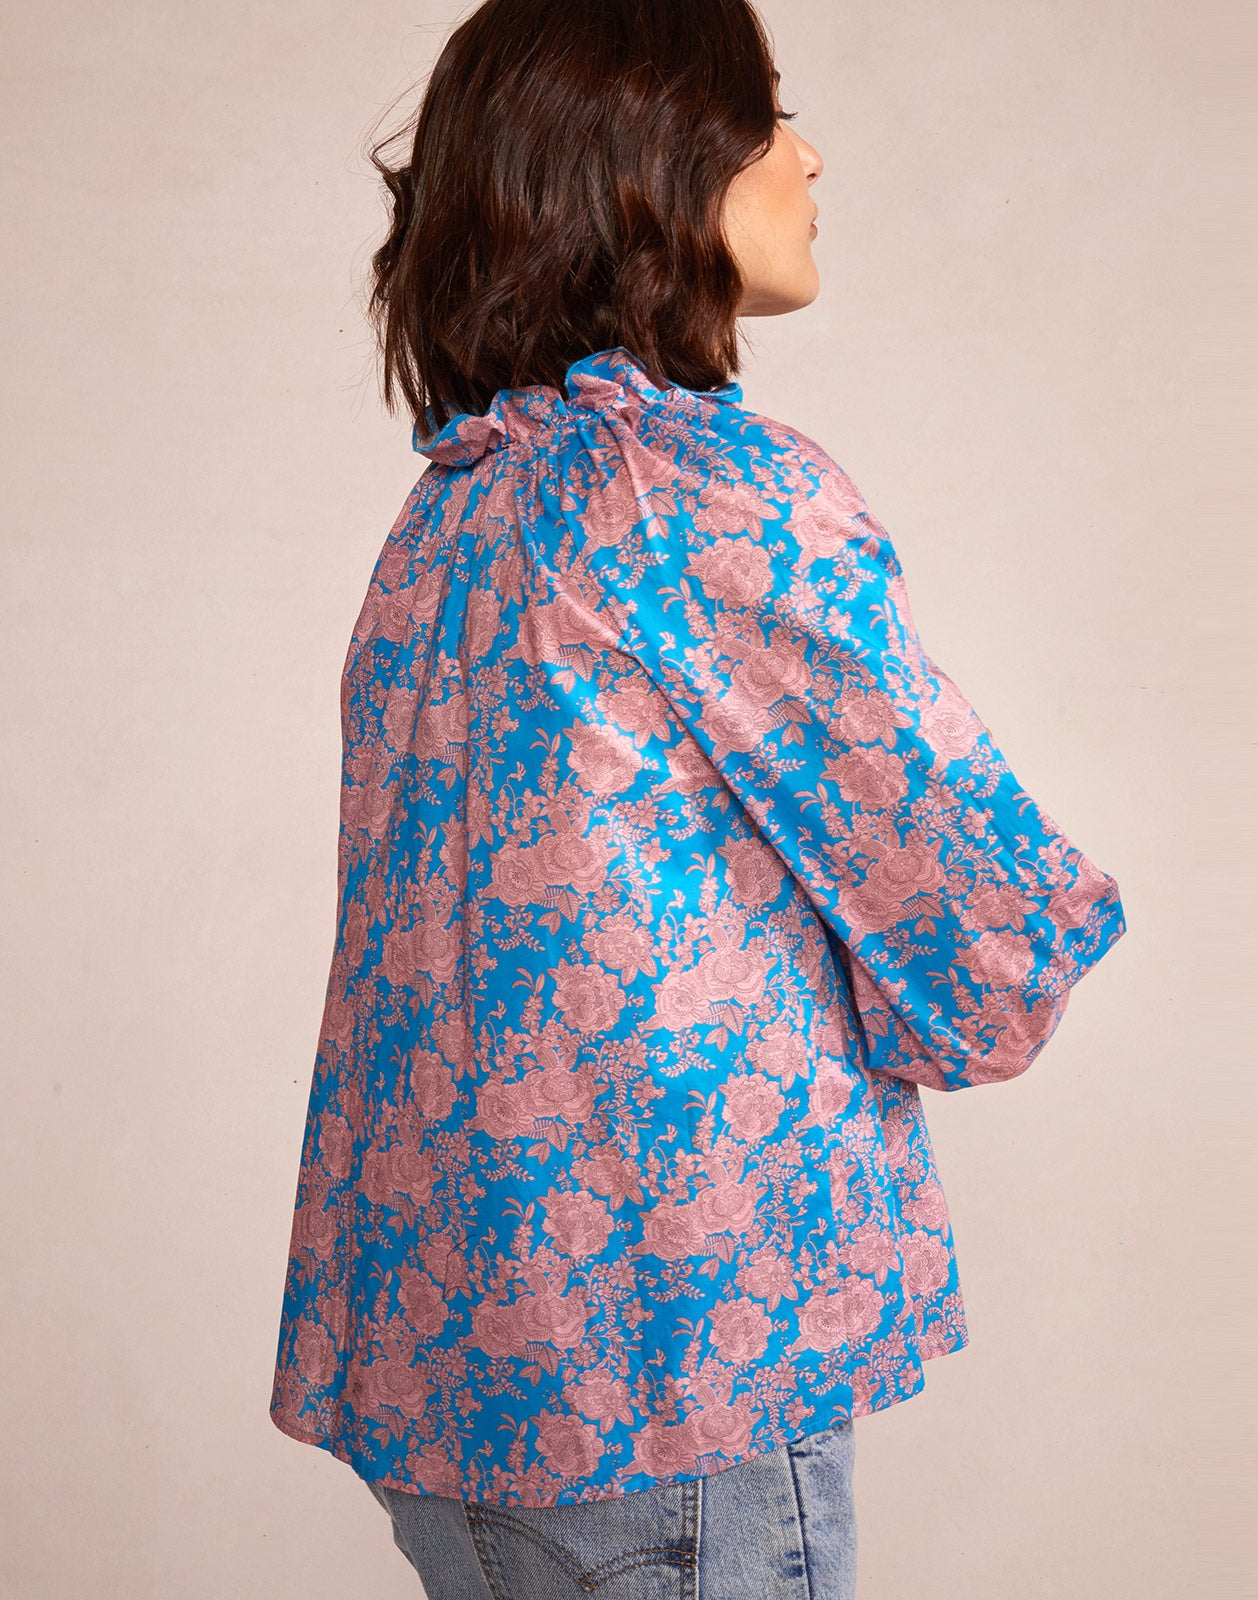 Alternate side view model wearing Floral Cotton Waterfall Top